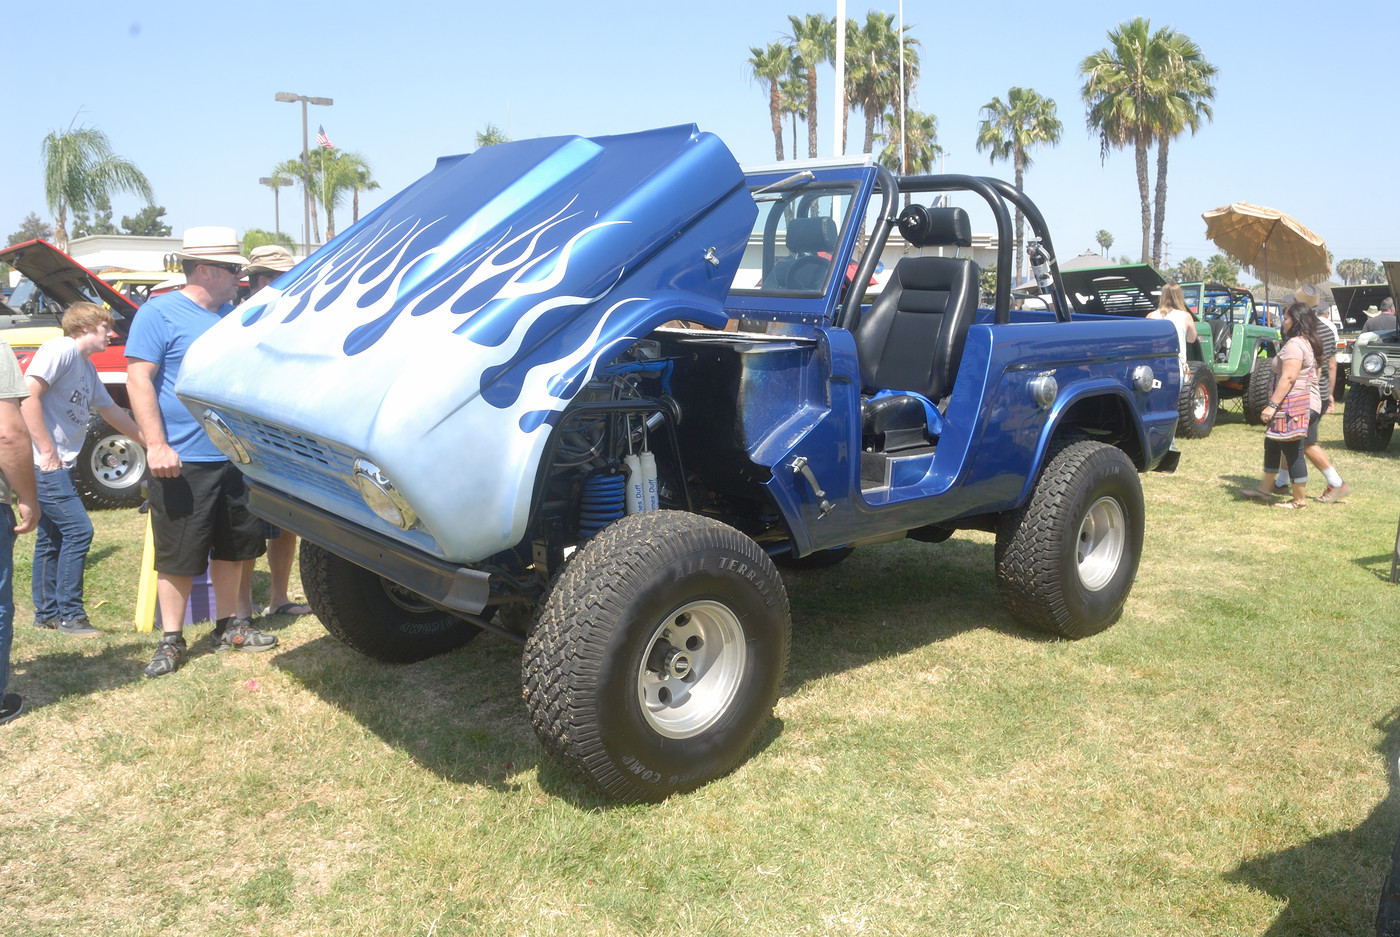 1968 Ford Bronco owned by Jeff Geisler DSC 4895